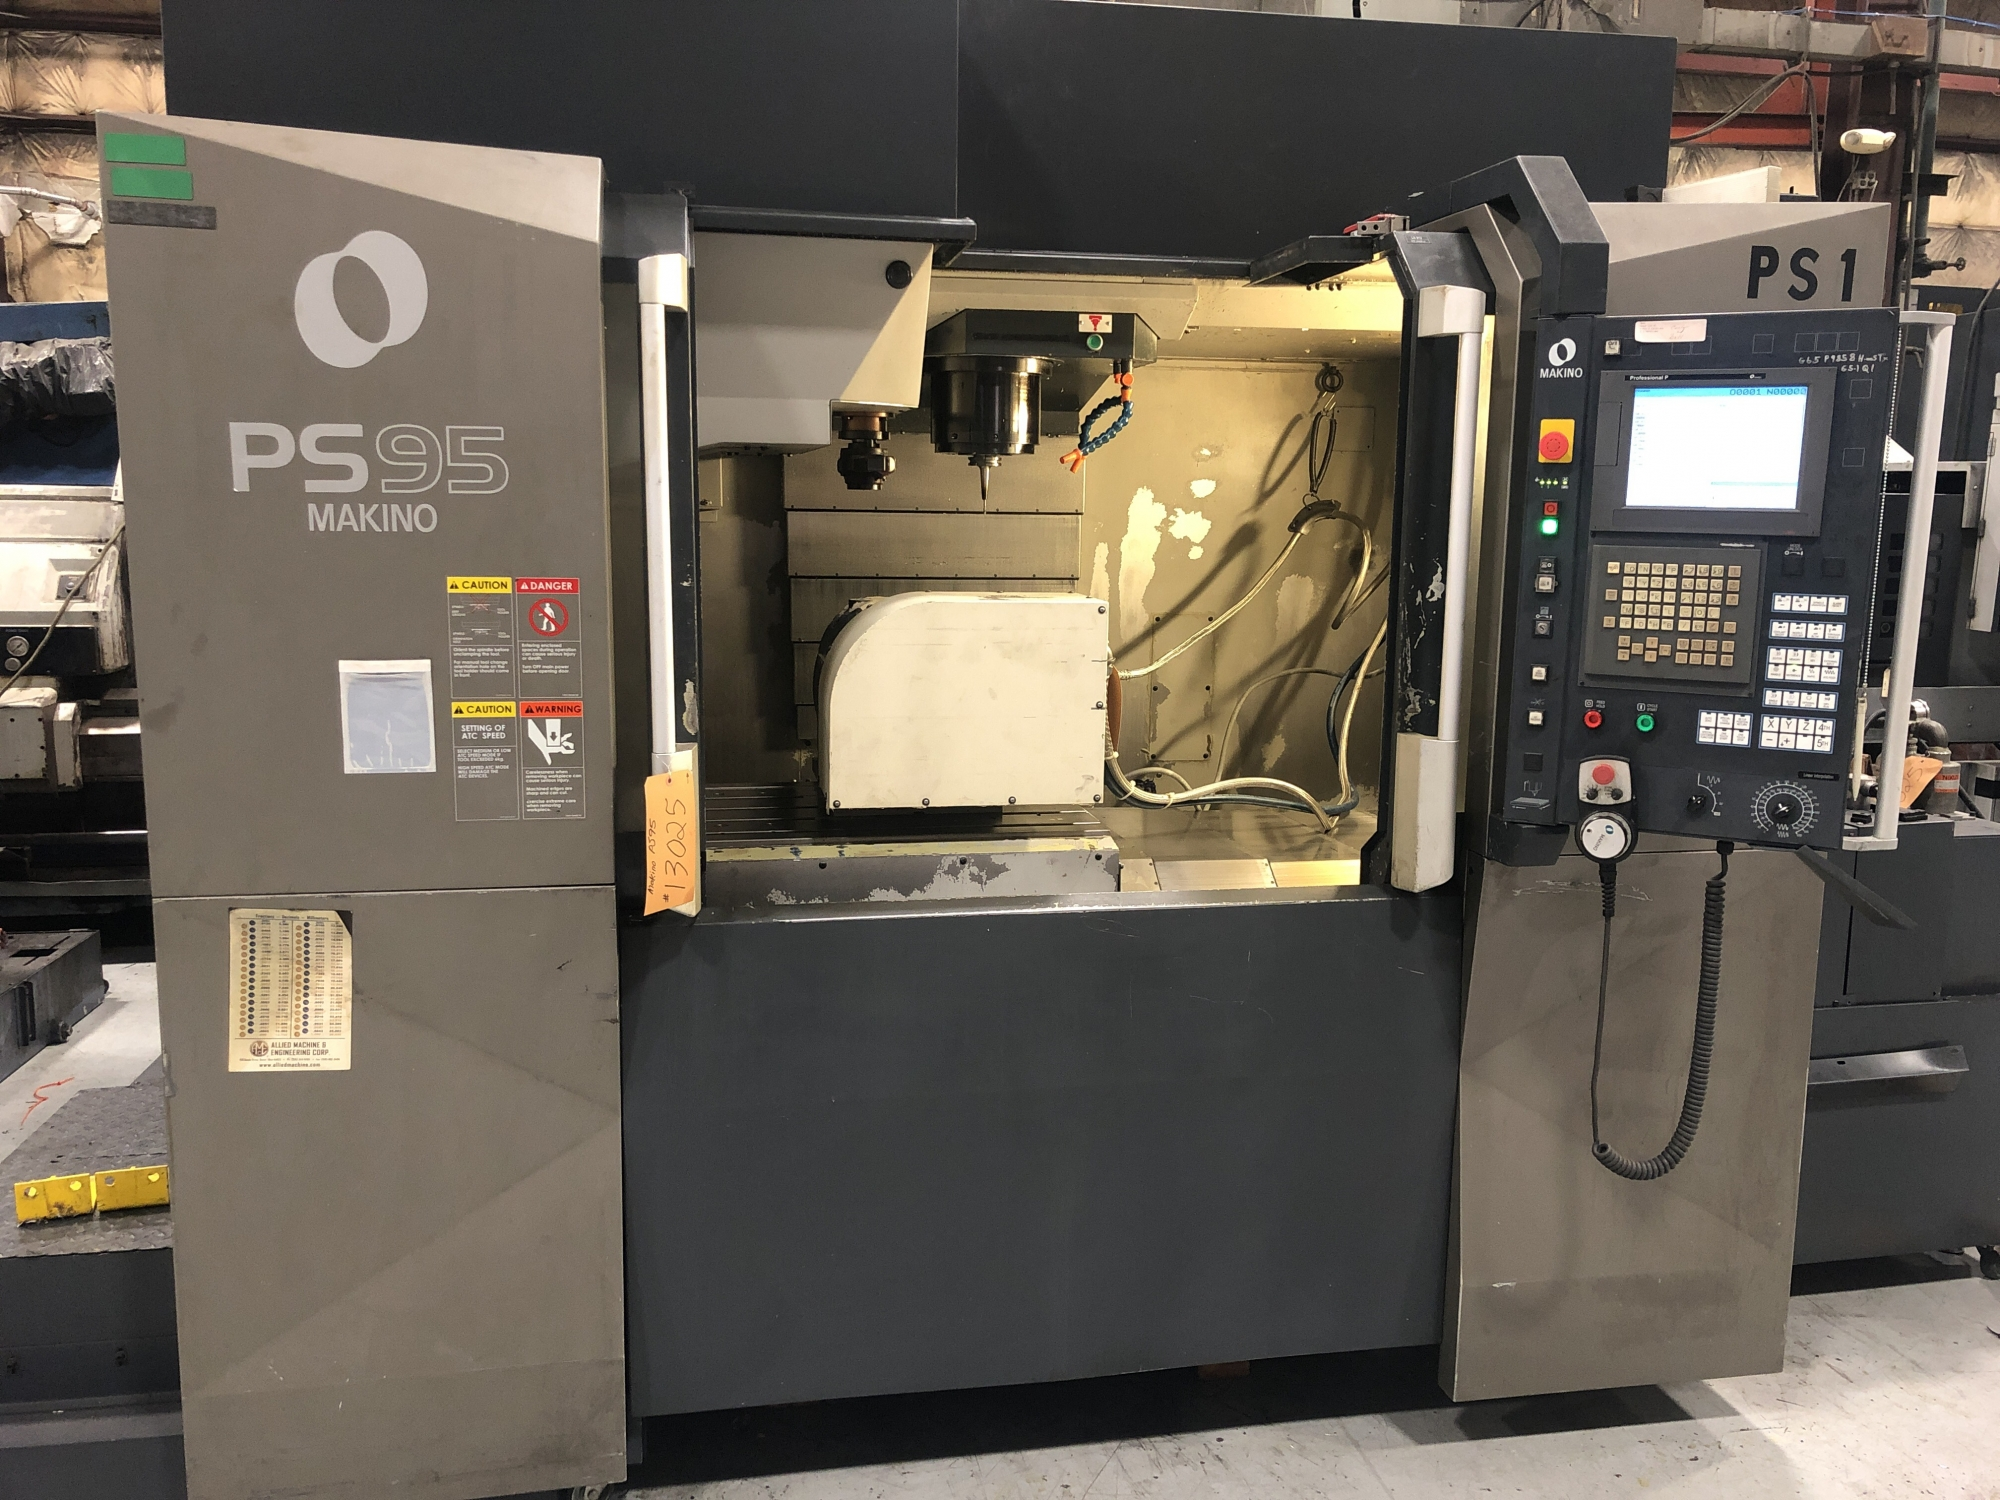 2011 MAKINO PS95 - 5 Axis - Vertical Machining Center